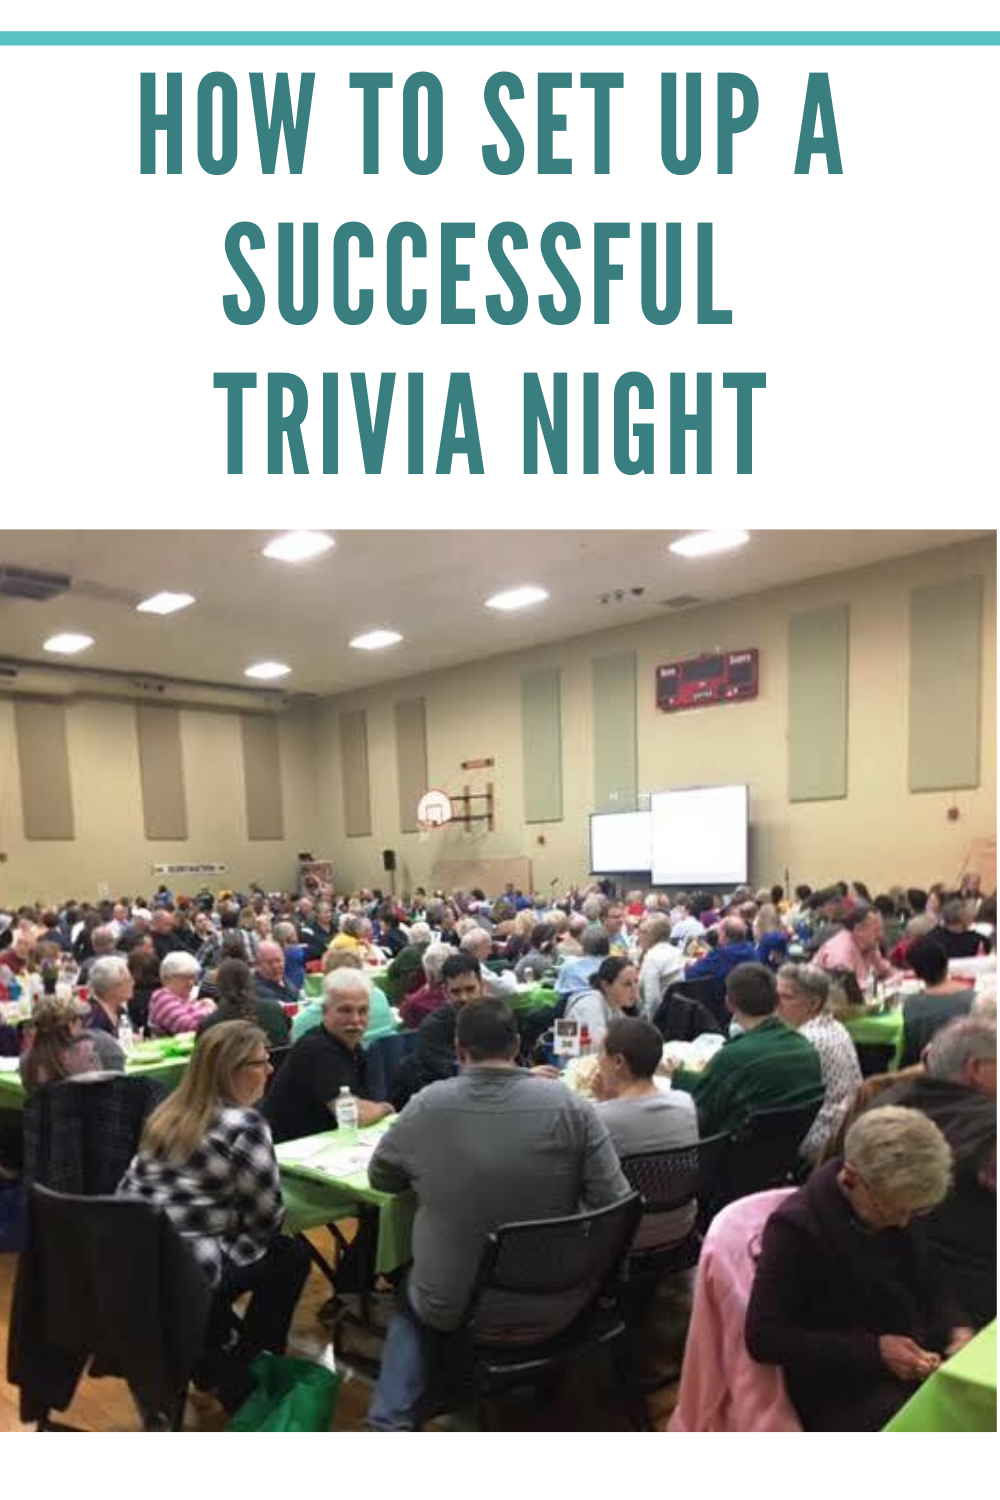 Trivia night rules and how to plan a trivia night